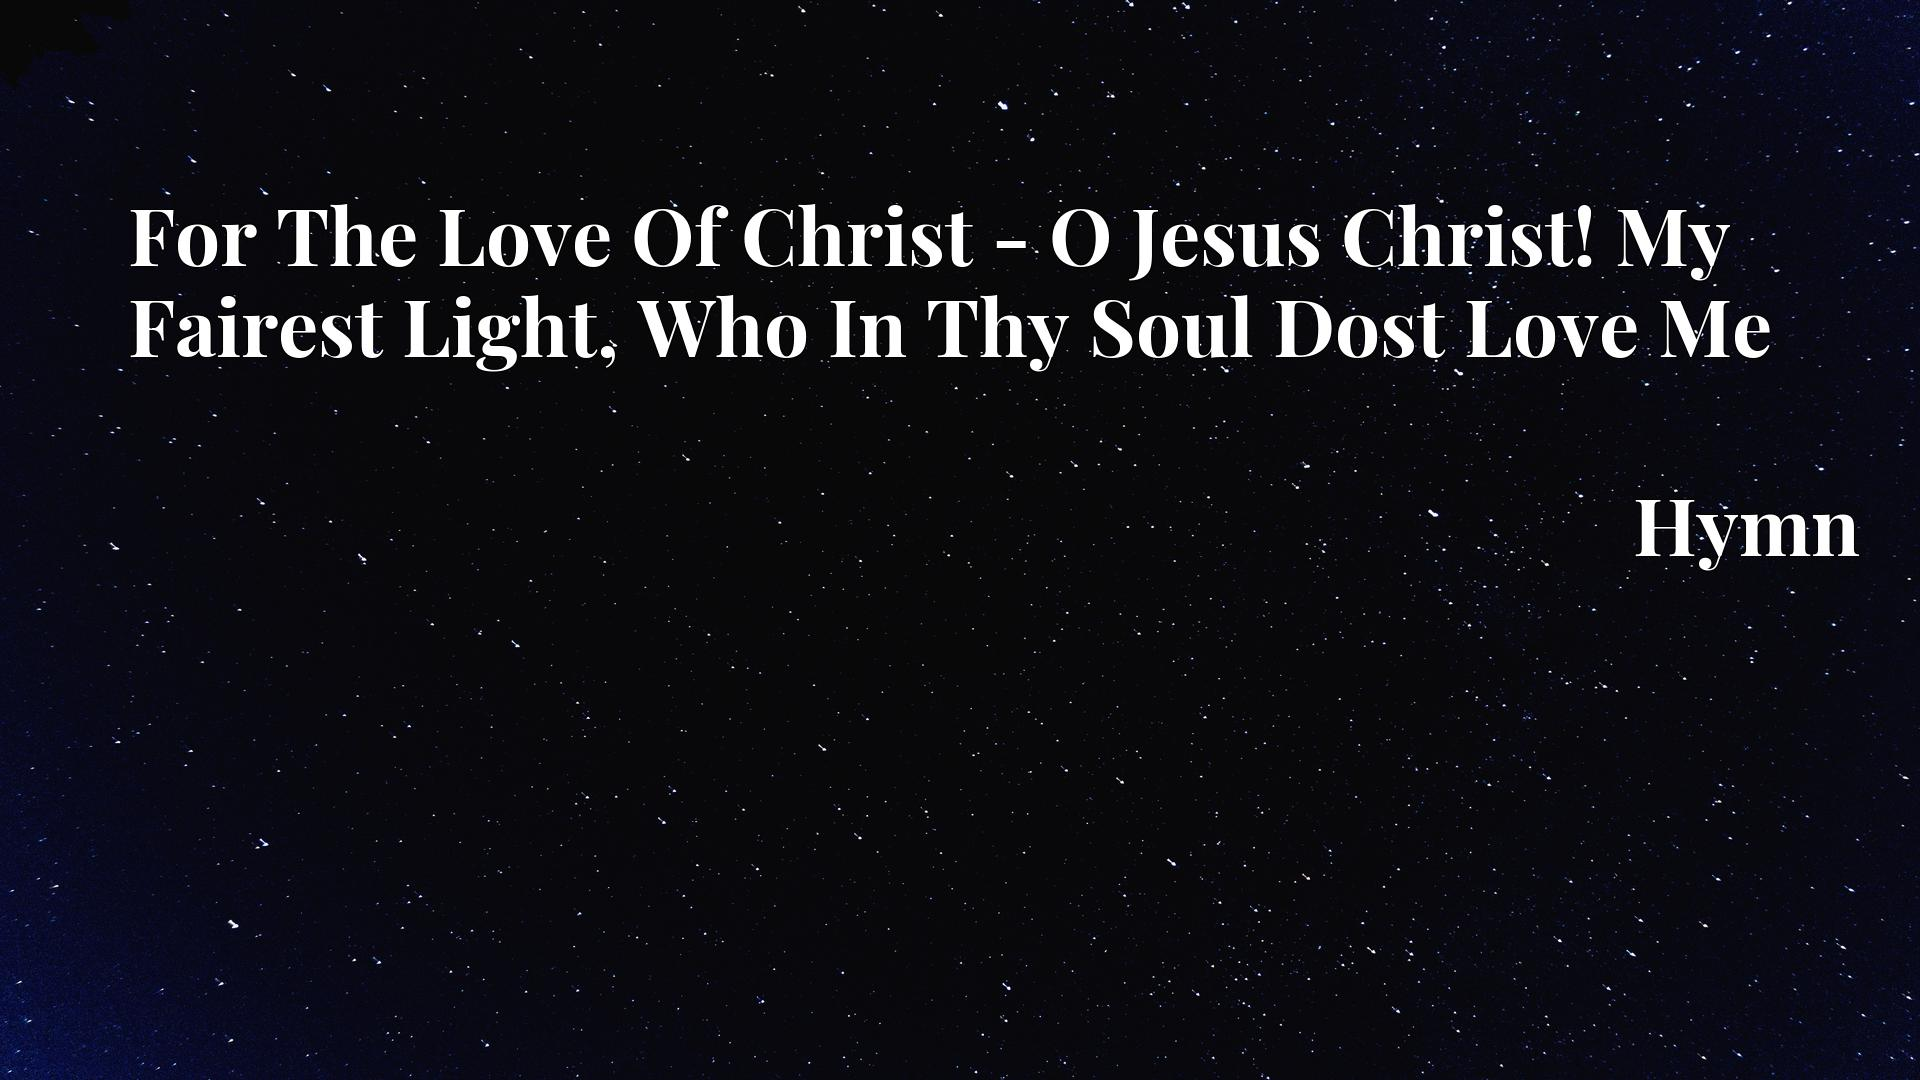 For The Love Of Christ - O Jesus Christ! My Fairest Light, Who In Thy Soul Dost Love Me - Hymn